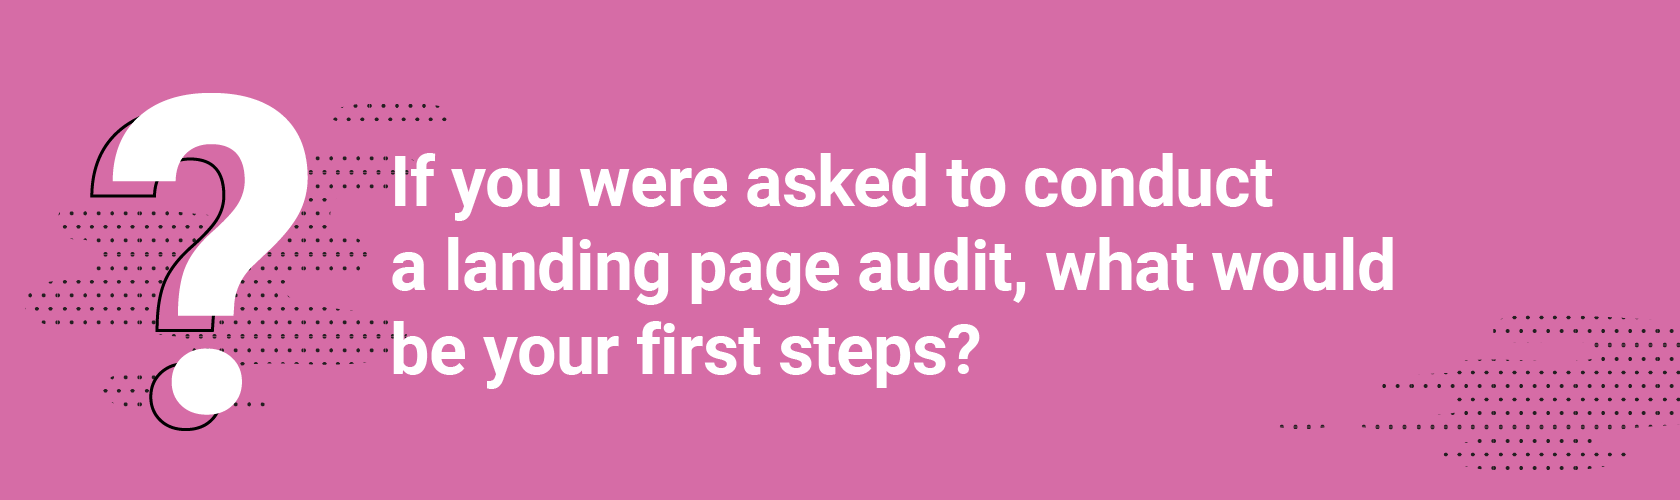 If you were asked to conduct a landing page audit, what would be your first steps?